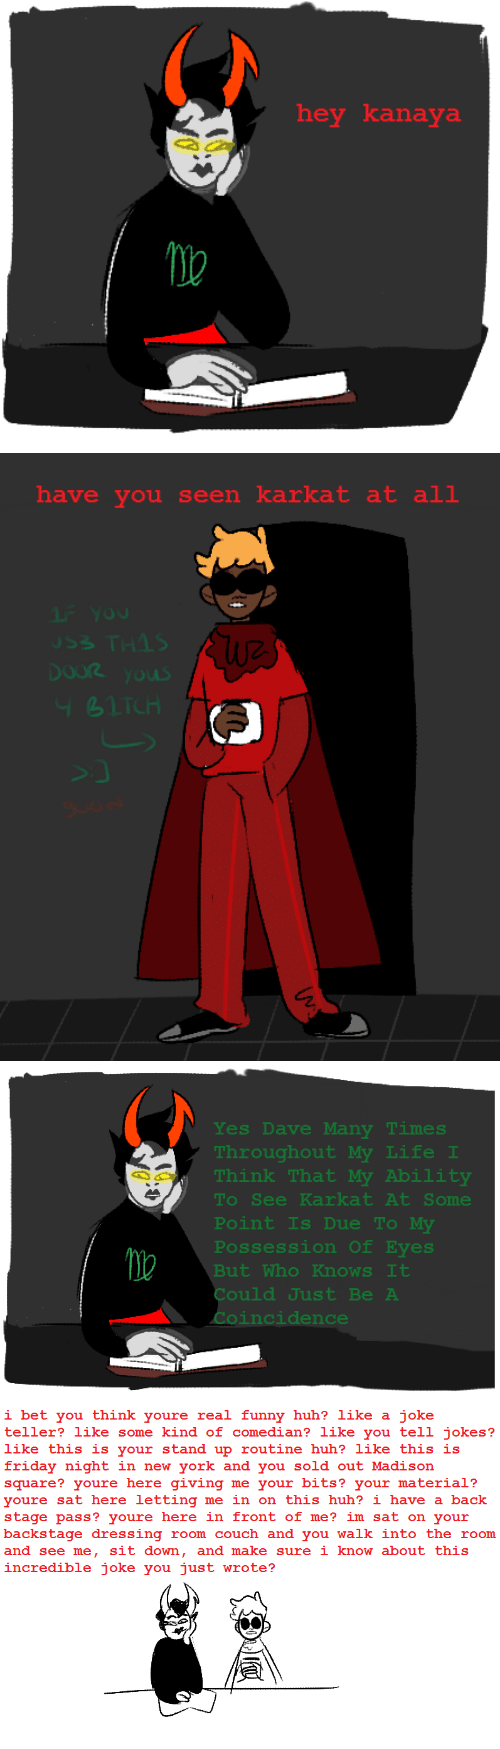 Friday, Funny, and Huh: hey kanaya   have you seen karkat at all  Ou  THIS  OLS   Yes Dave Many Times  Throughout My Life I  Think That My Ability  See Karkat At Some  To  Point Is Due To My  Possession of Eyes  But Who Knows It  Could Just Be A  Coincidence   i bet you think youre real funny huh? like a joke  teller? like some kind of comedian? like you tell jokes?  like this is your stand up routine huh? like this is  friday night in new york and you sold out Madison  square? youre here giving me your bits? your material?  youre sat here letting me in on this huh? i have a back  stage pass? youre here in front of me? im sat on your  backstage dressing room couch and you walk into the room  and see me, sit down, and make sure i know about this  incredible joke you just wrote?